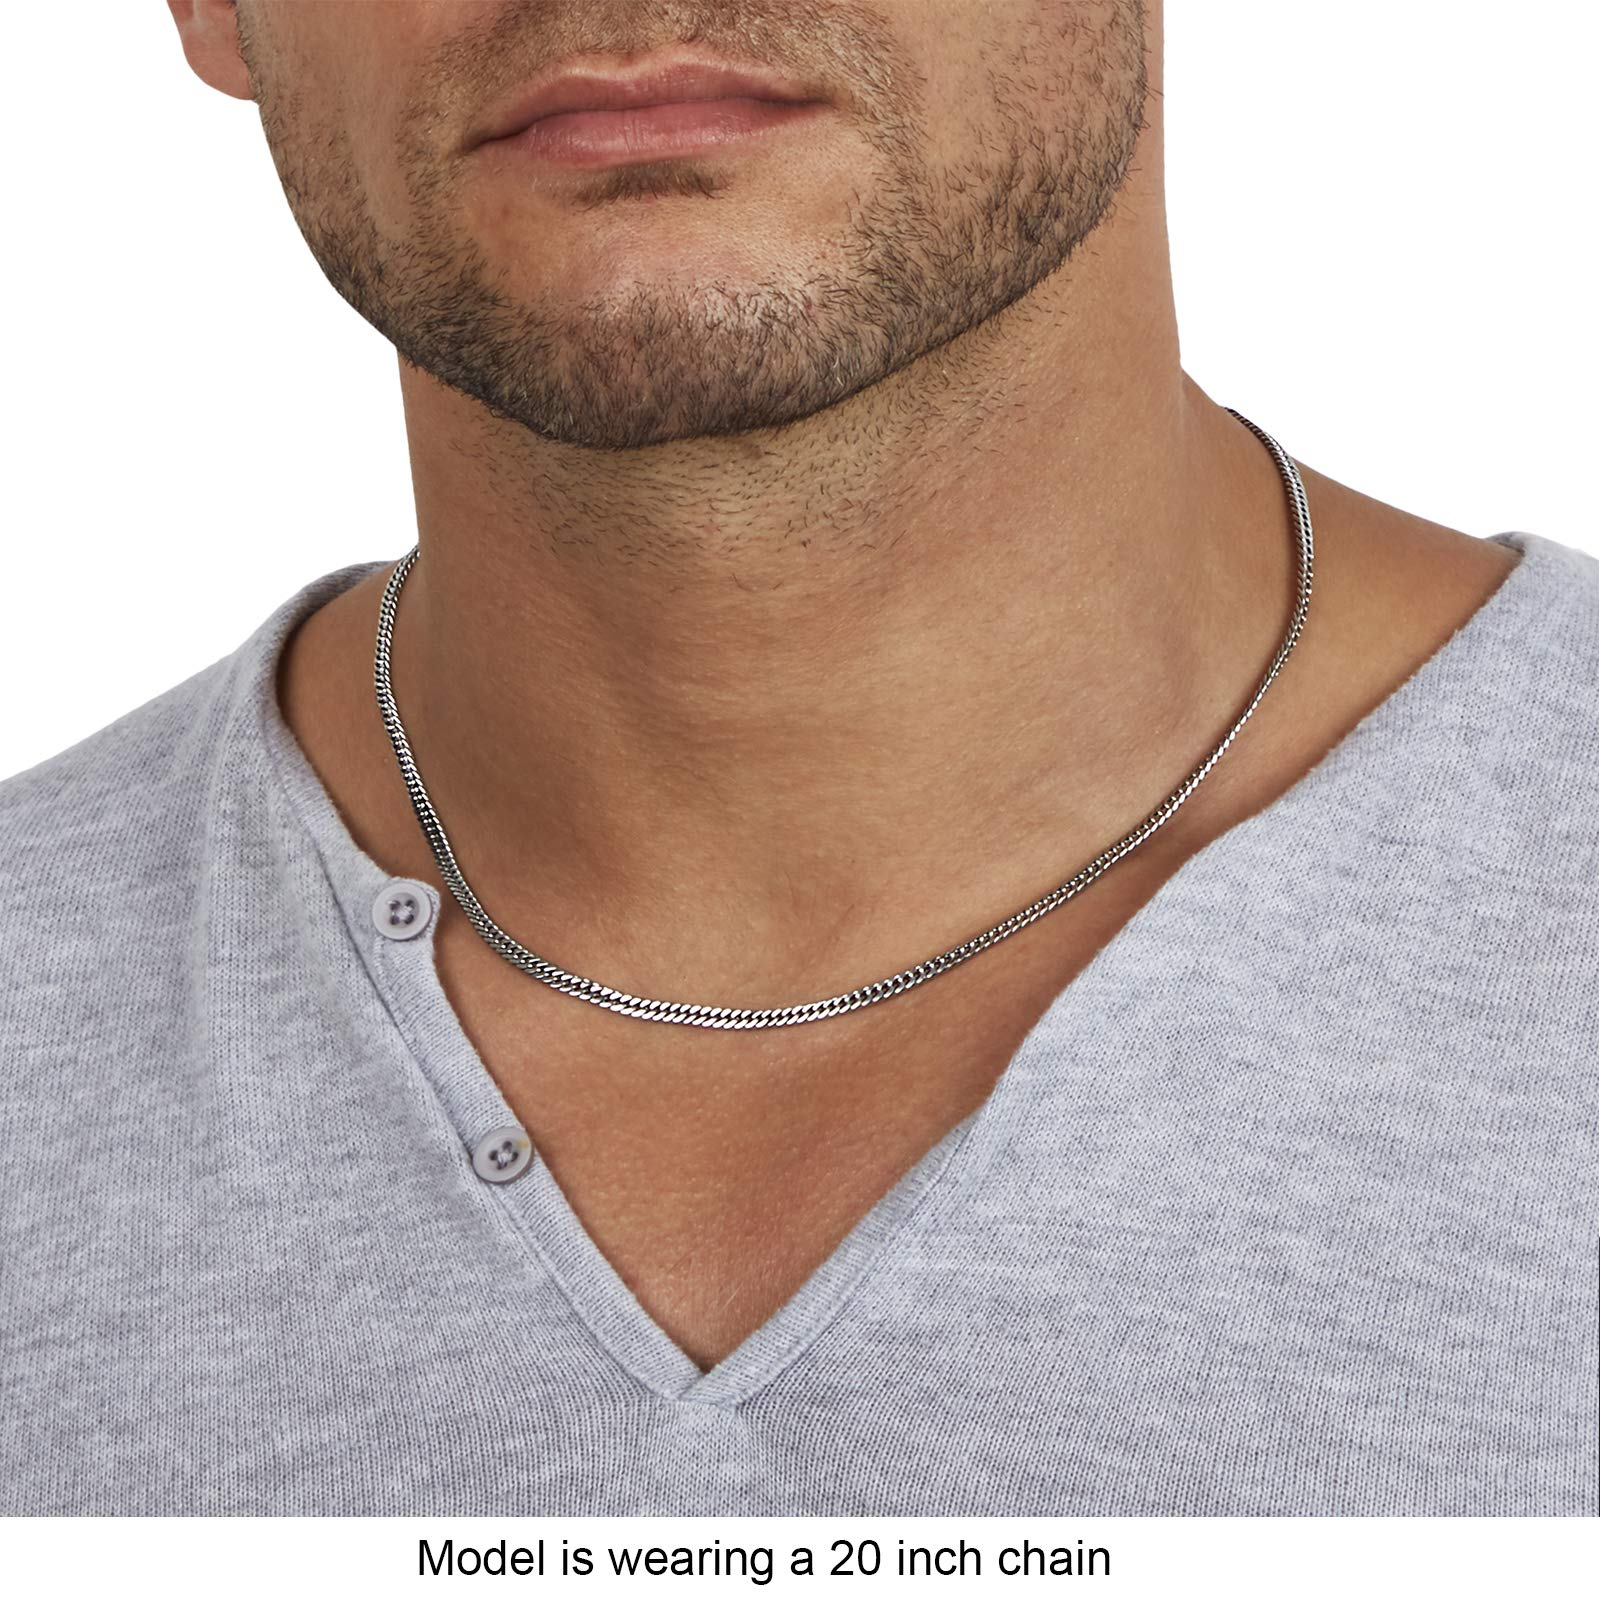 Neck Link Chains for Men Man Male Women Boys Girls 18 20 22 24 26 36 UK Silver Chain Twist Stainless Steel Jewelry Silvadore 4mm Rope Mens Necklace